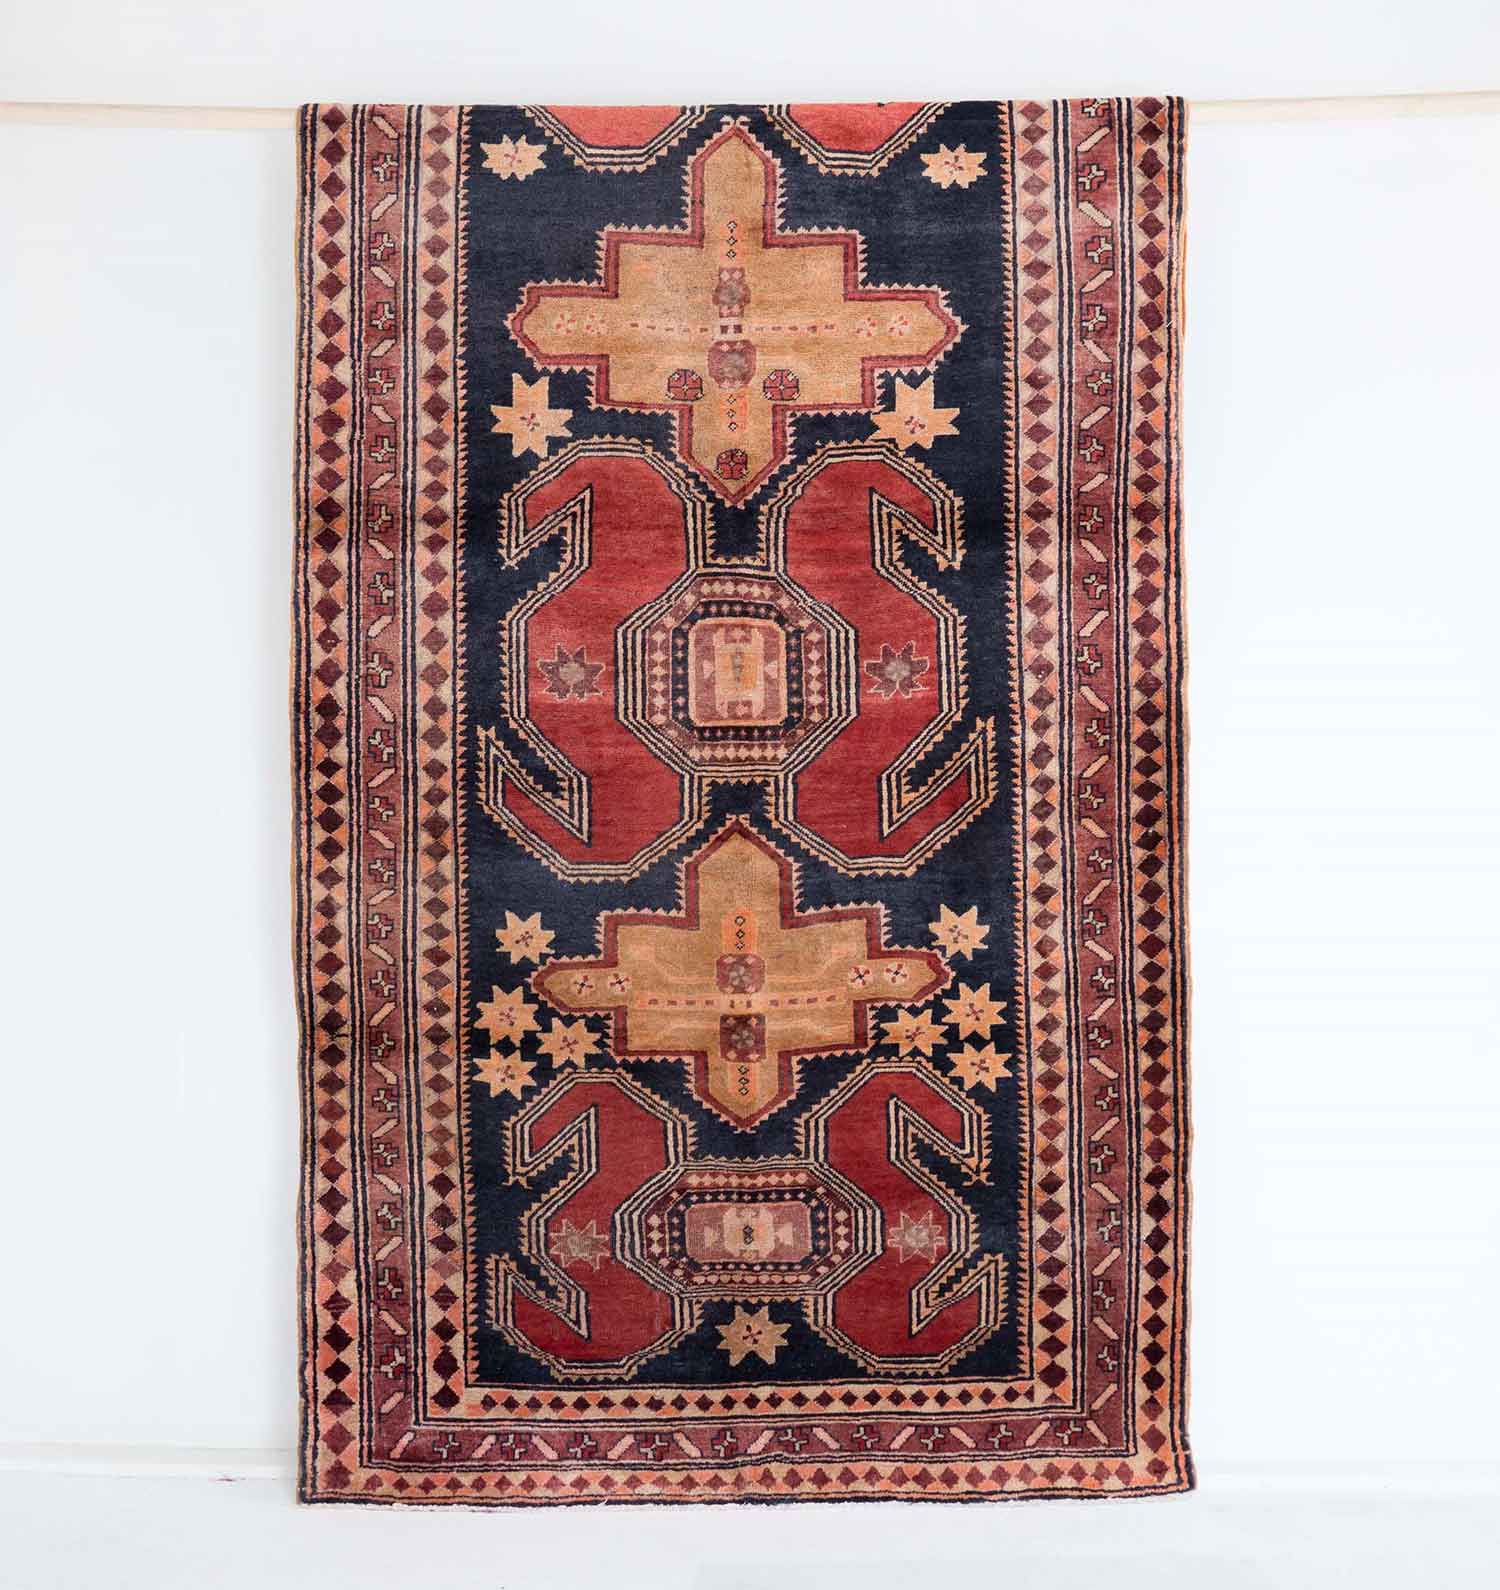 NO. 0076 / PERSIAN (ARDABIL) / 50 YEARS / 10'0 x 4'5 FT